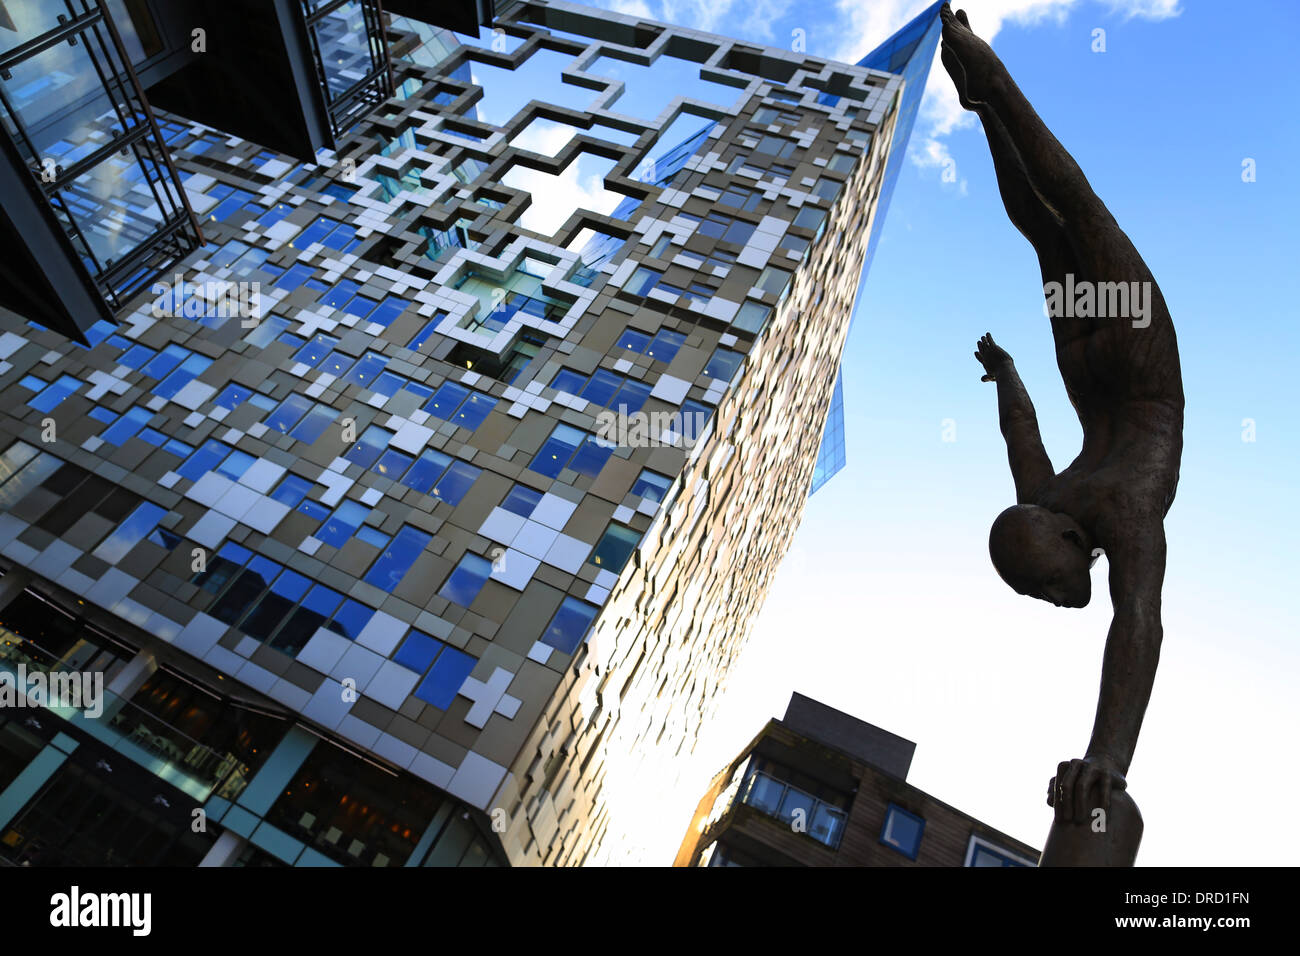 The Cube Birmingham, home of Hotel Indigo and Marco Pierre White, designed by Ken Shuttleworth - Stock Image